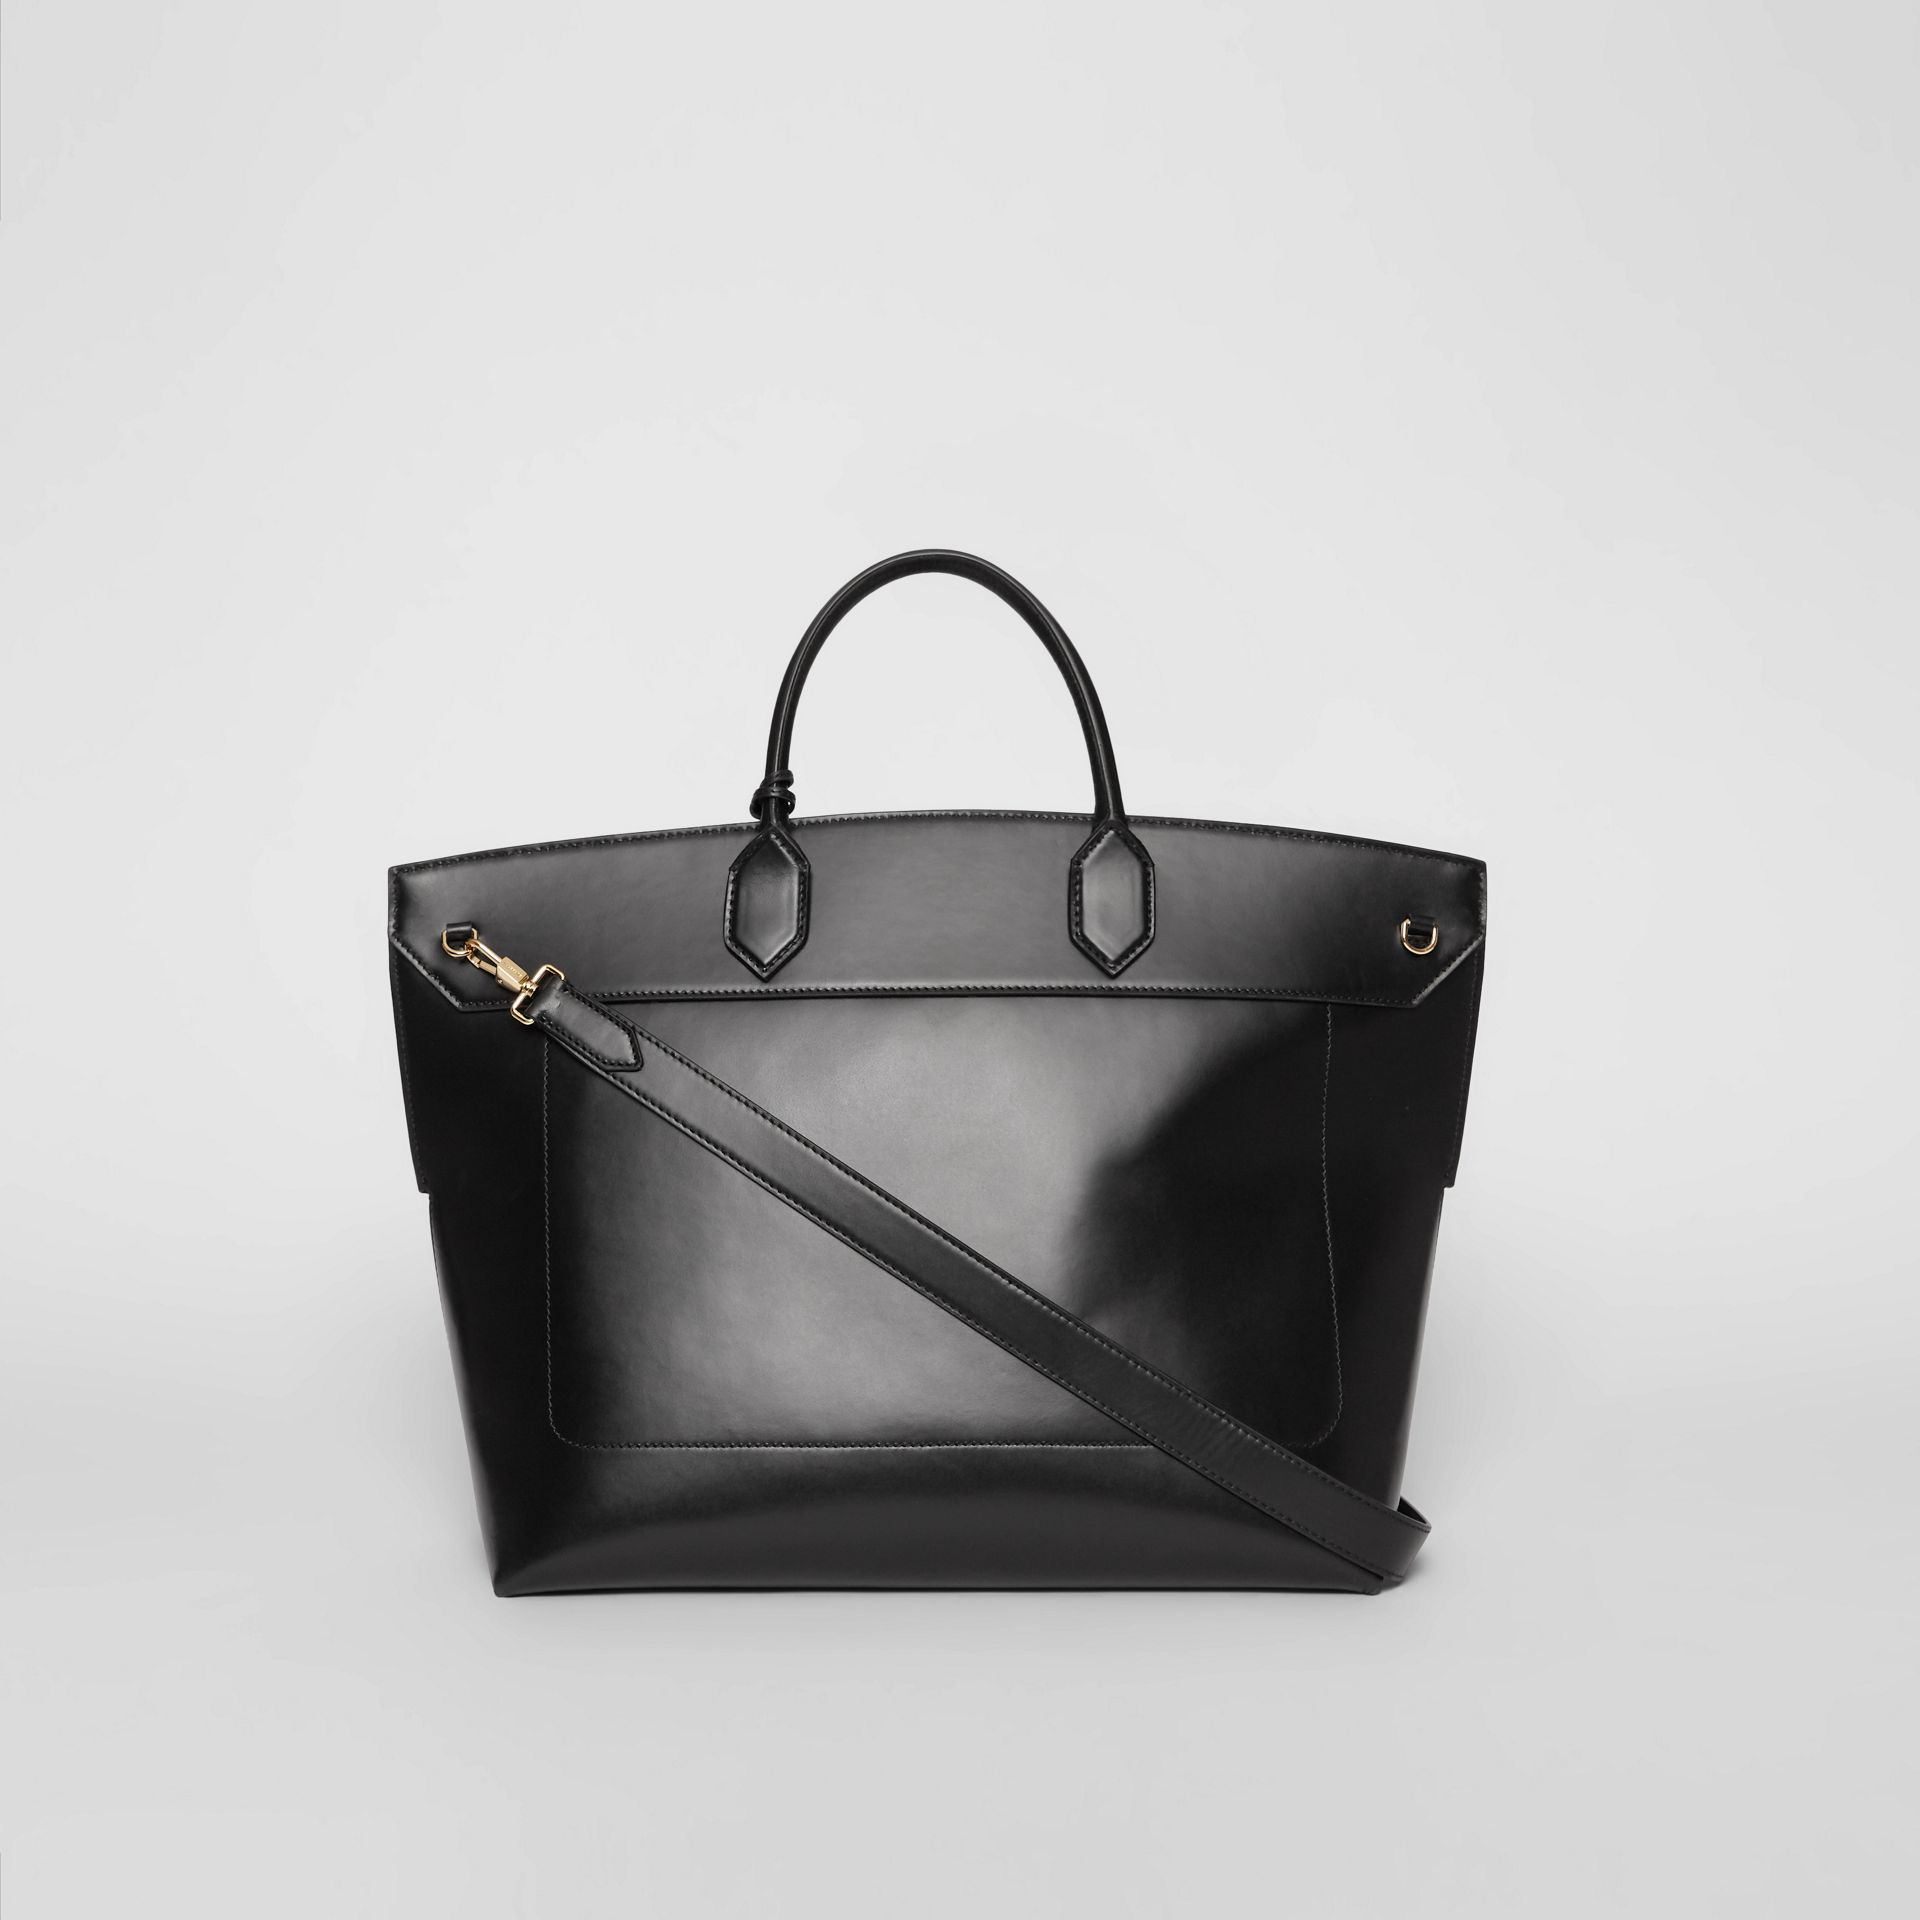 Leather Society Top Handle Bag in Black - Women | Burberry United States - gallery image 7